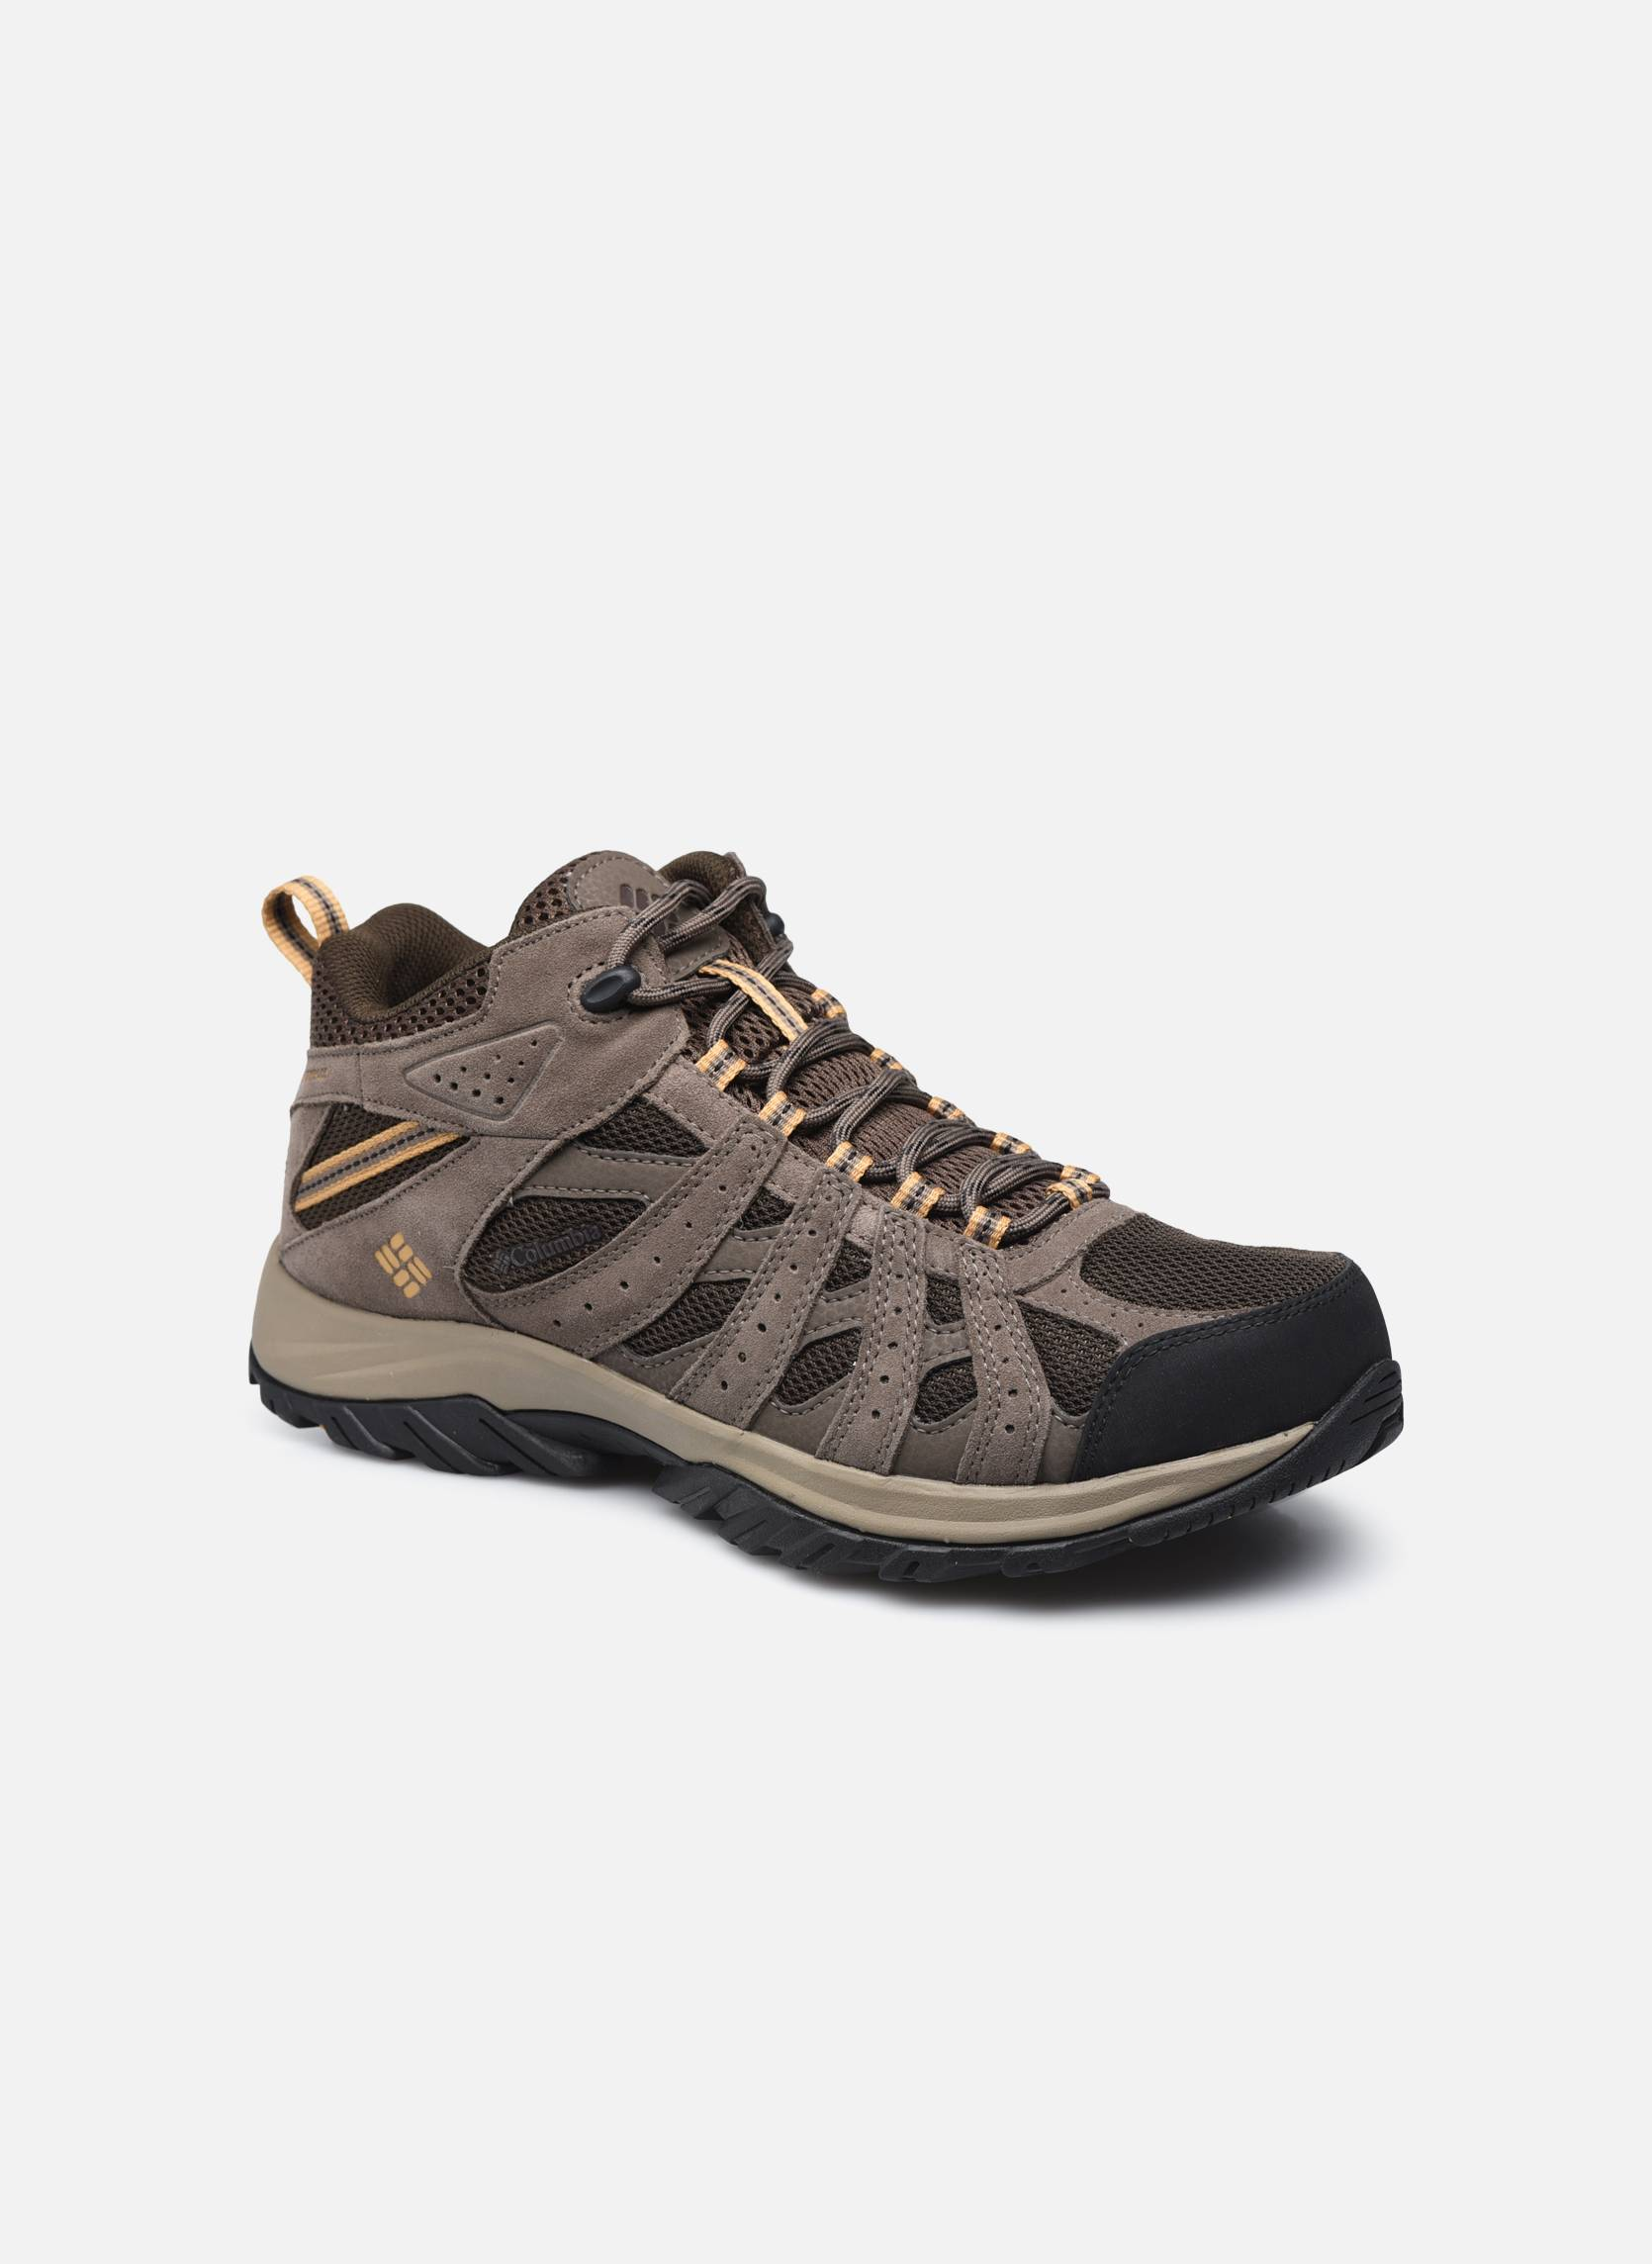 Columbia Chaussures de sport - Columbia - Canyon Point Mid Waterproof